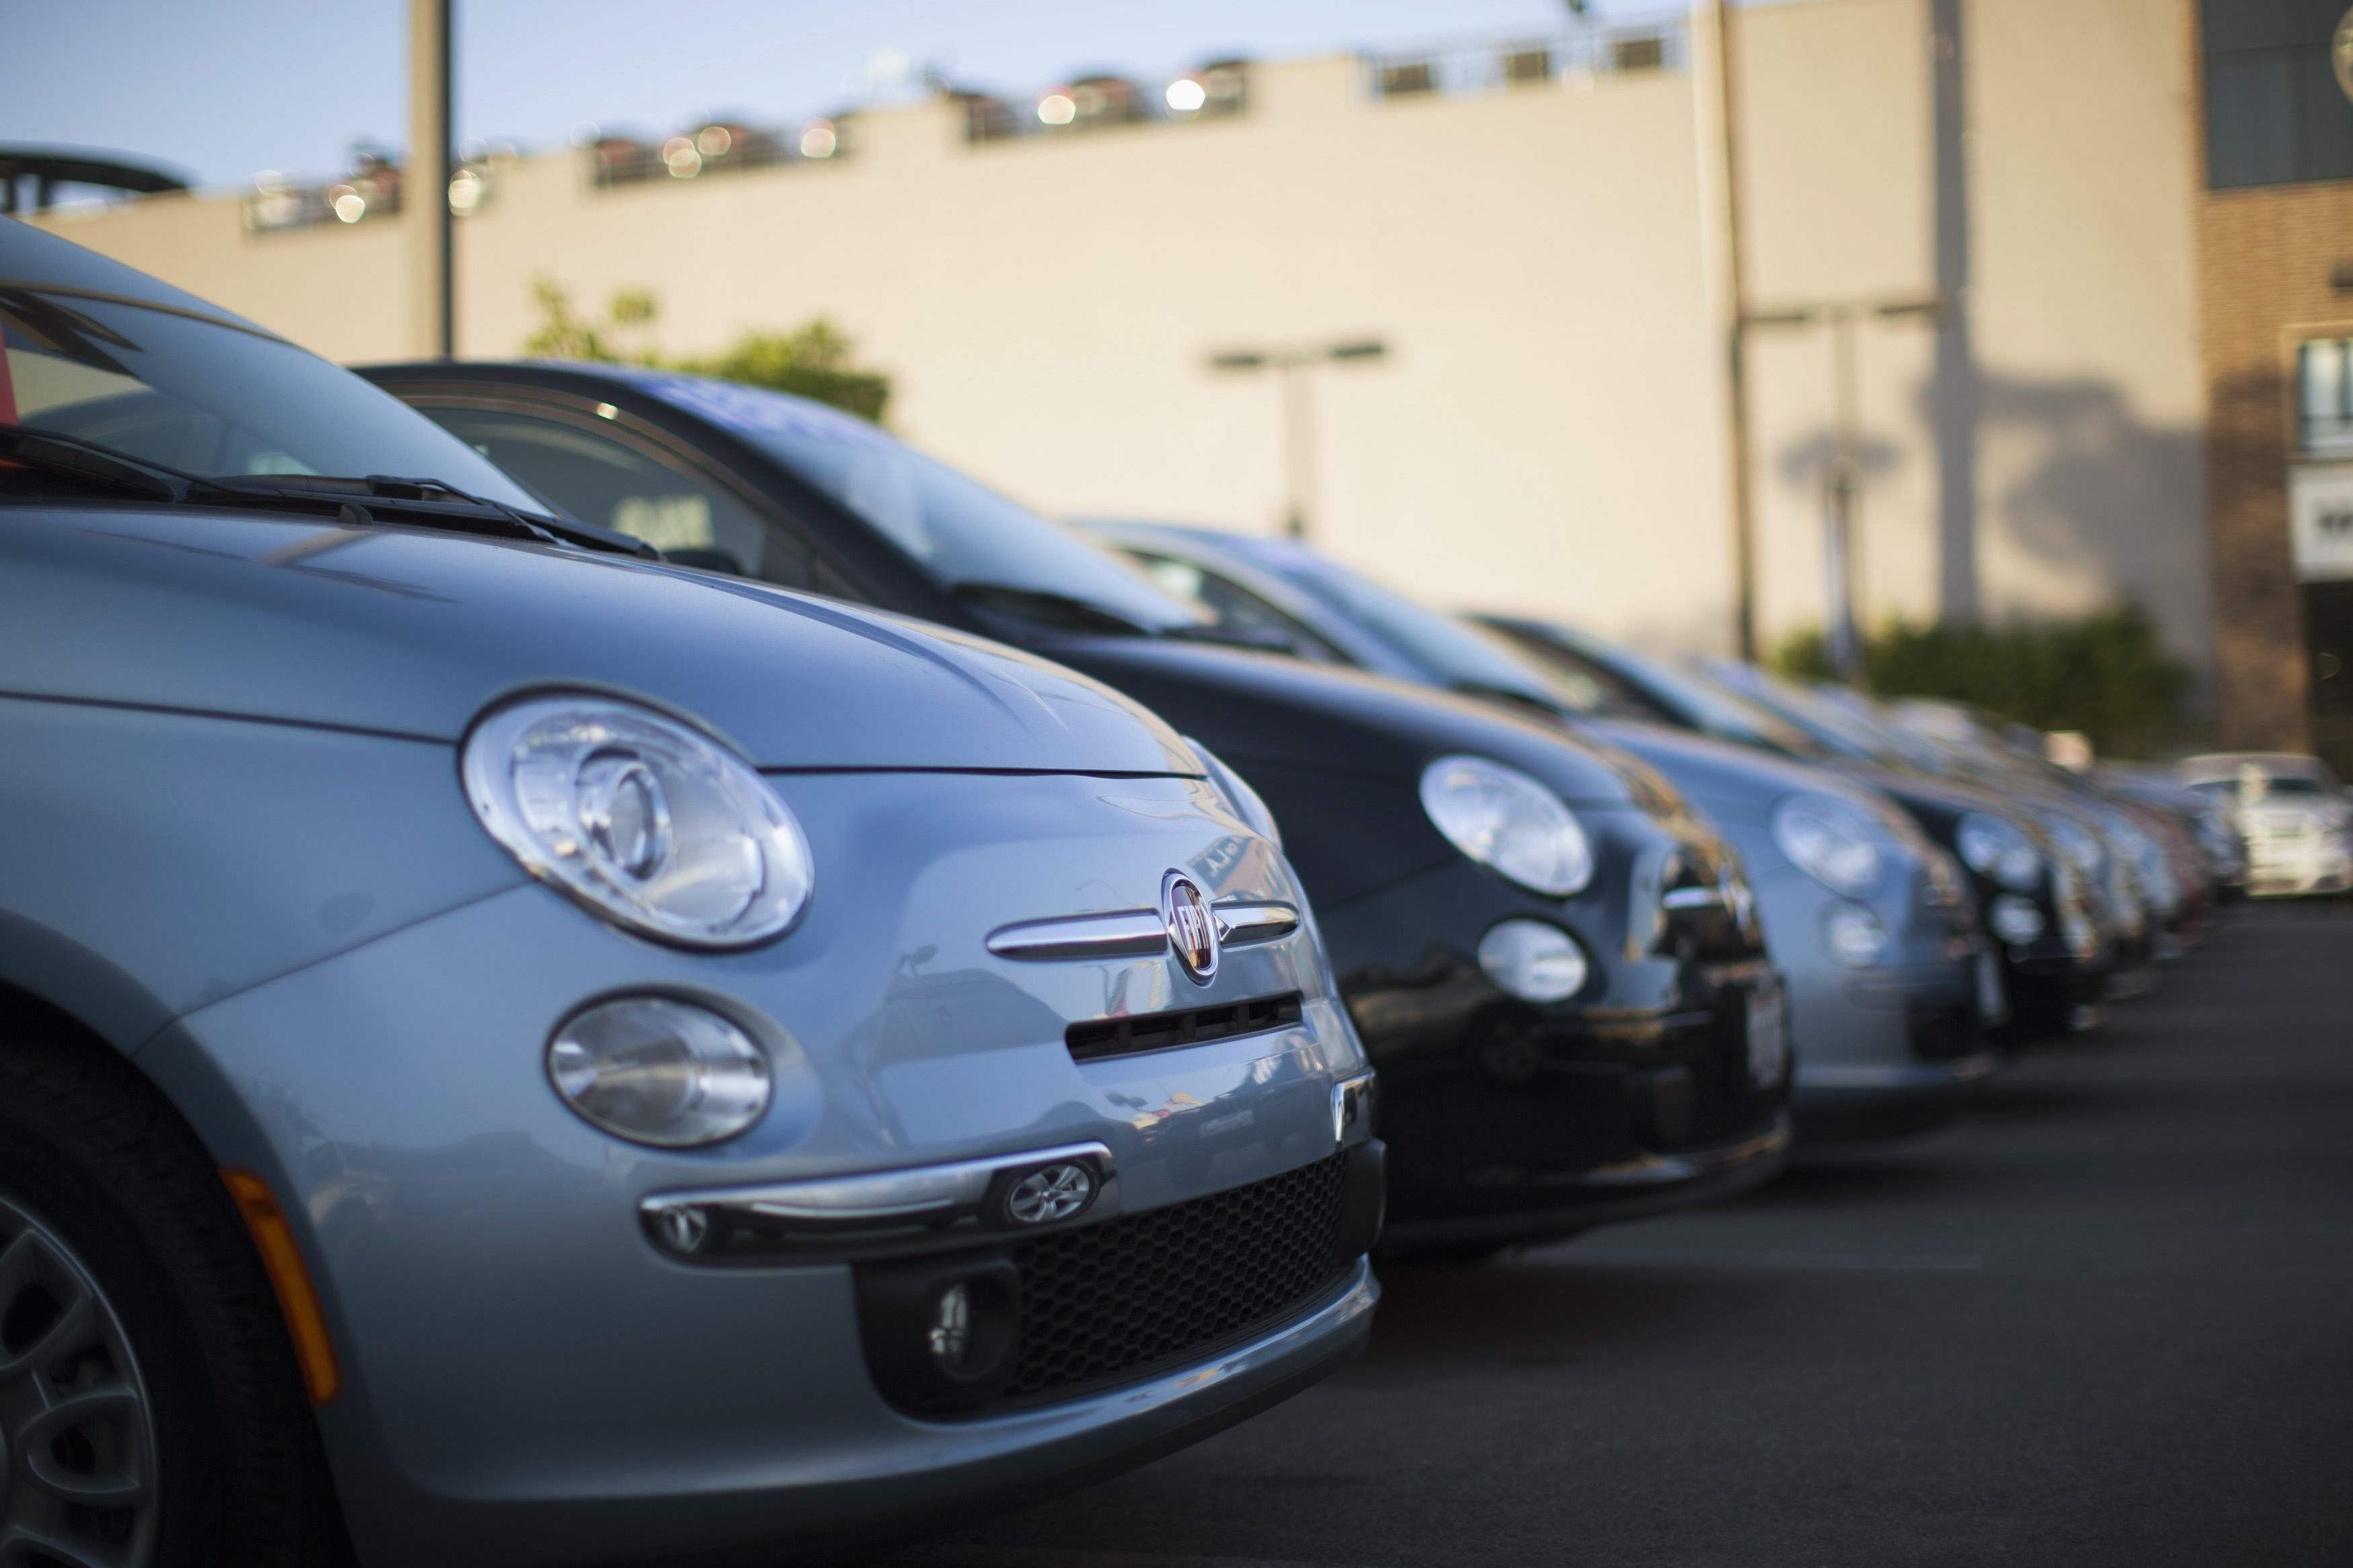 FCA recalls 3.3m autos worldwide for Takata airbags, Transport - THE ...